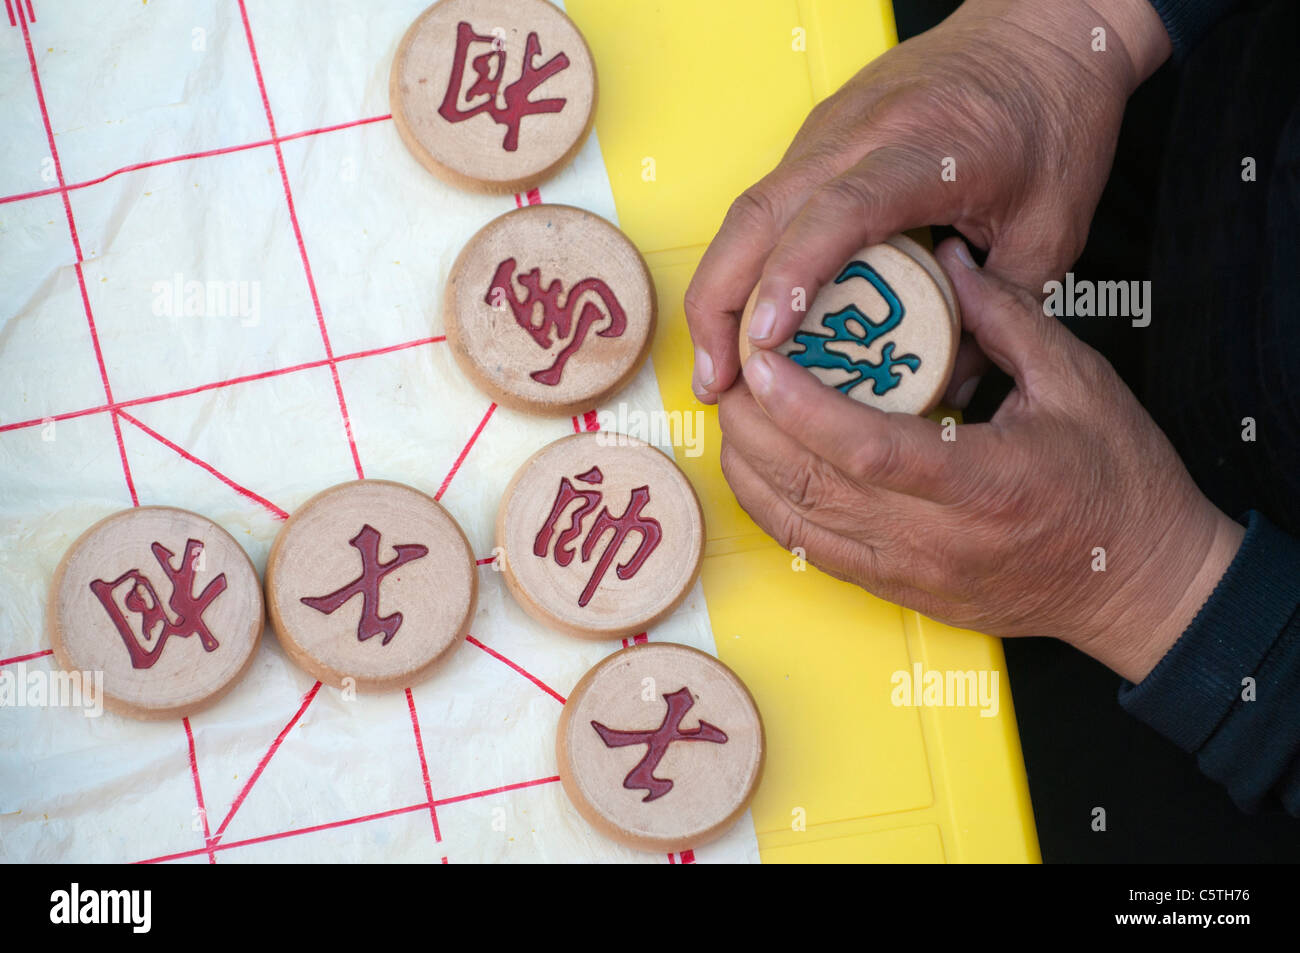 Player holds game pieces during Xiangqi, or Chinese chess, at outdoor cafe, Quilian, Qinghai Province, China - Stock Image